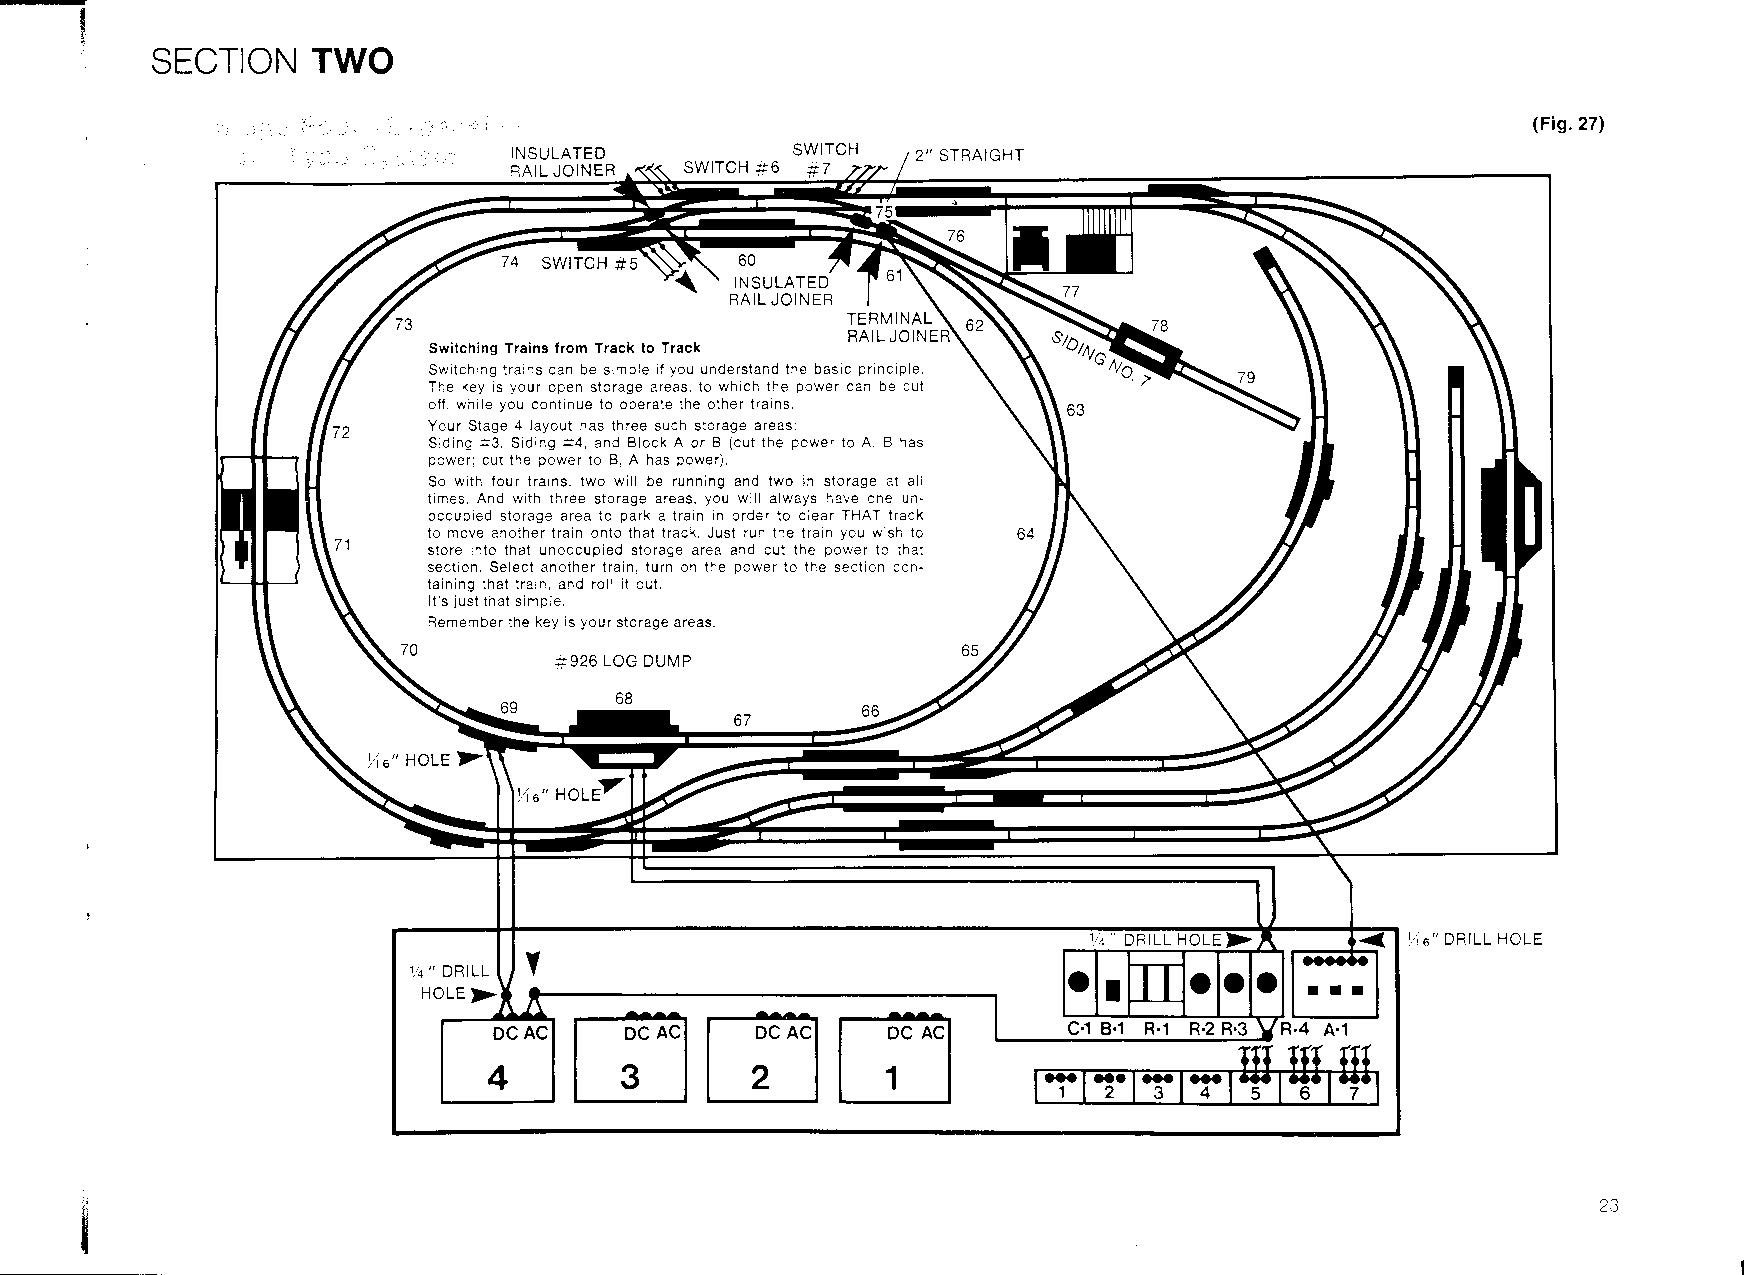 wiring diagram for slot car track with Lionel Lo Otive Wiring Diagrams on Wiring Diagrams 1996 Ford Explorer further Tjet wiring diagrams as well Car Stereo Installation additionally Vintage Nascar Race Cars also Hyundai Veracruz Fuse Panel Diagram.